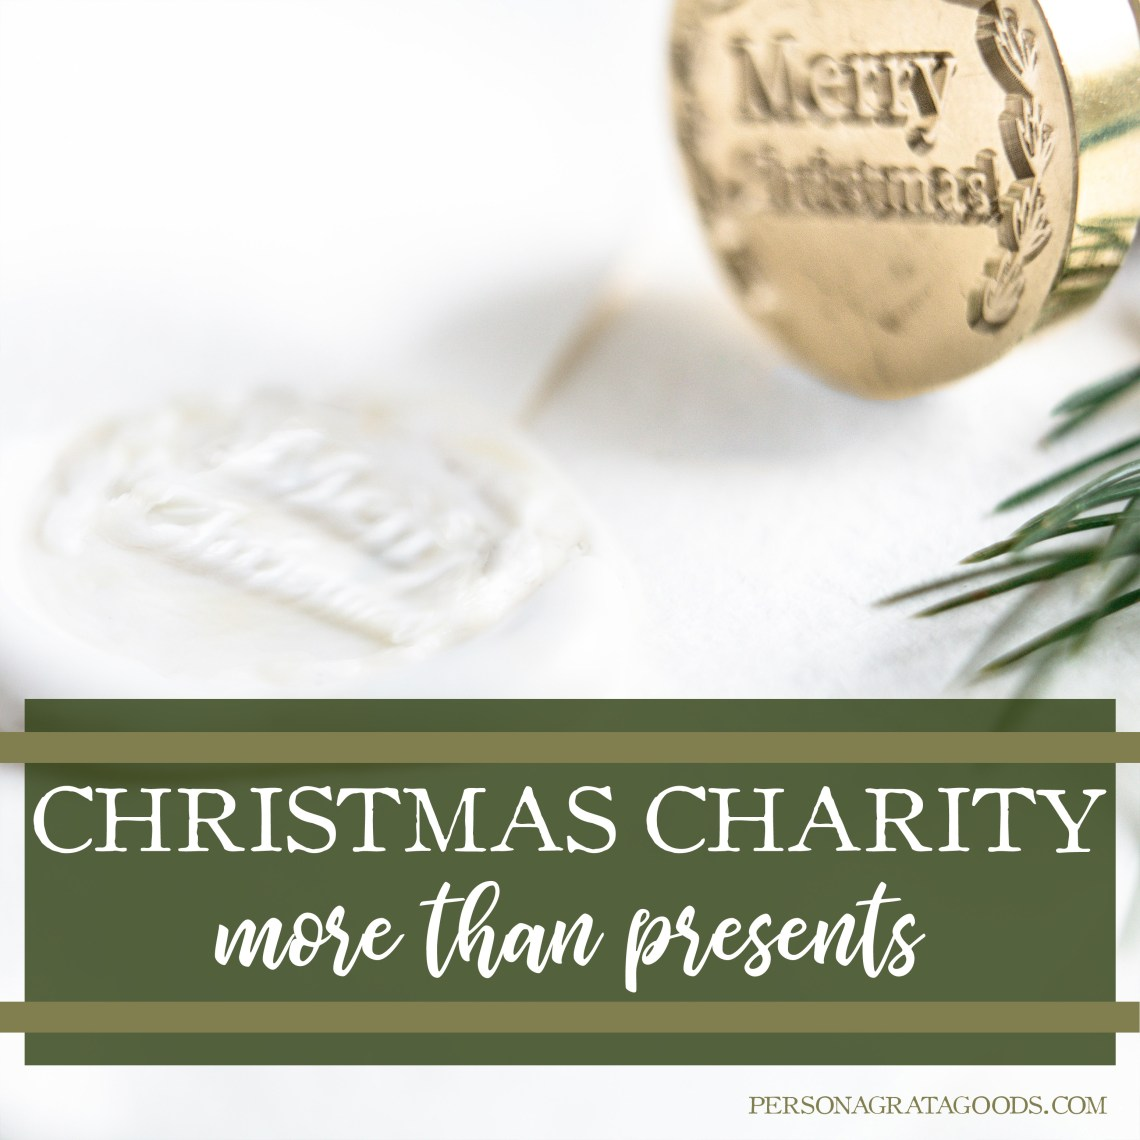 Christmas Charity What works